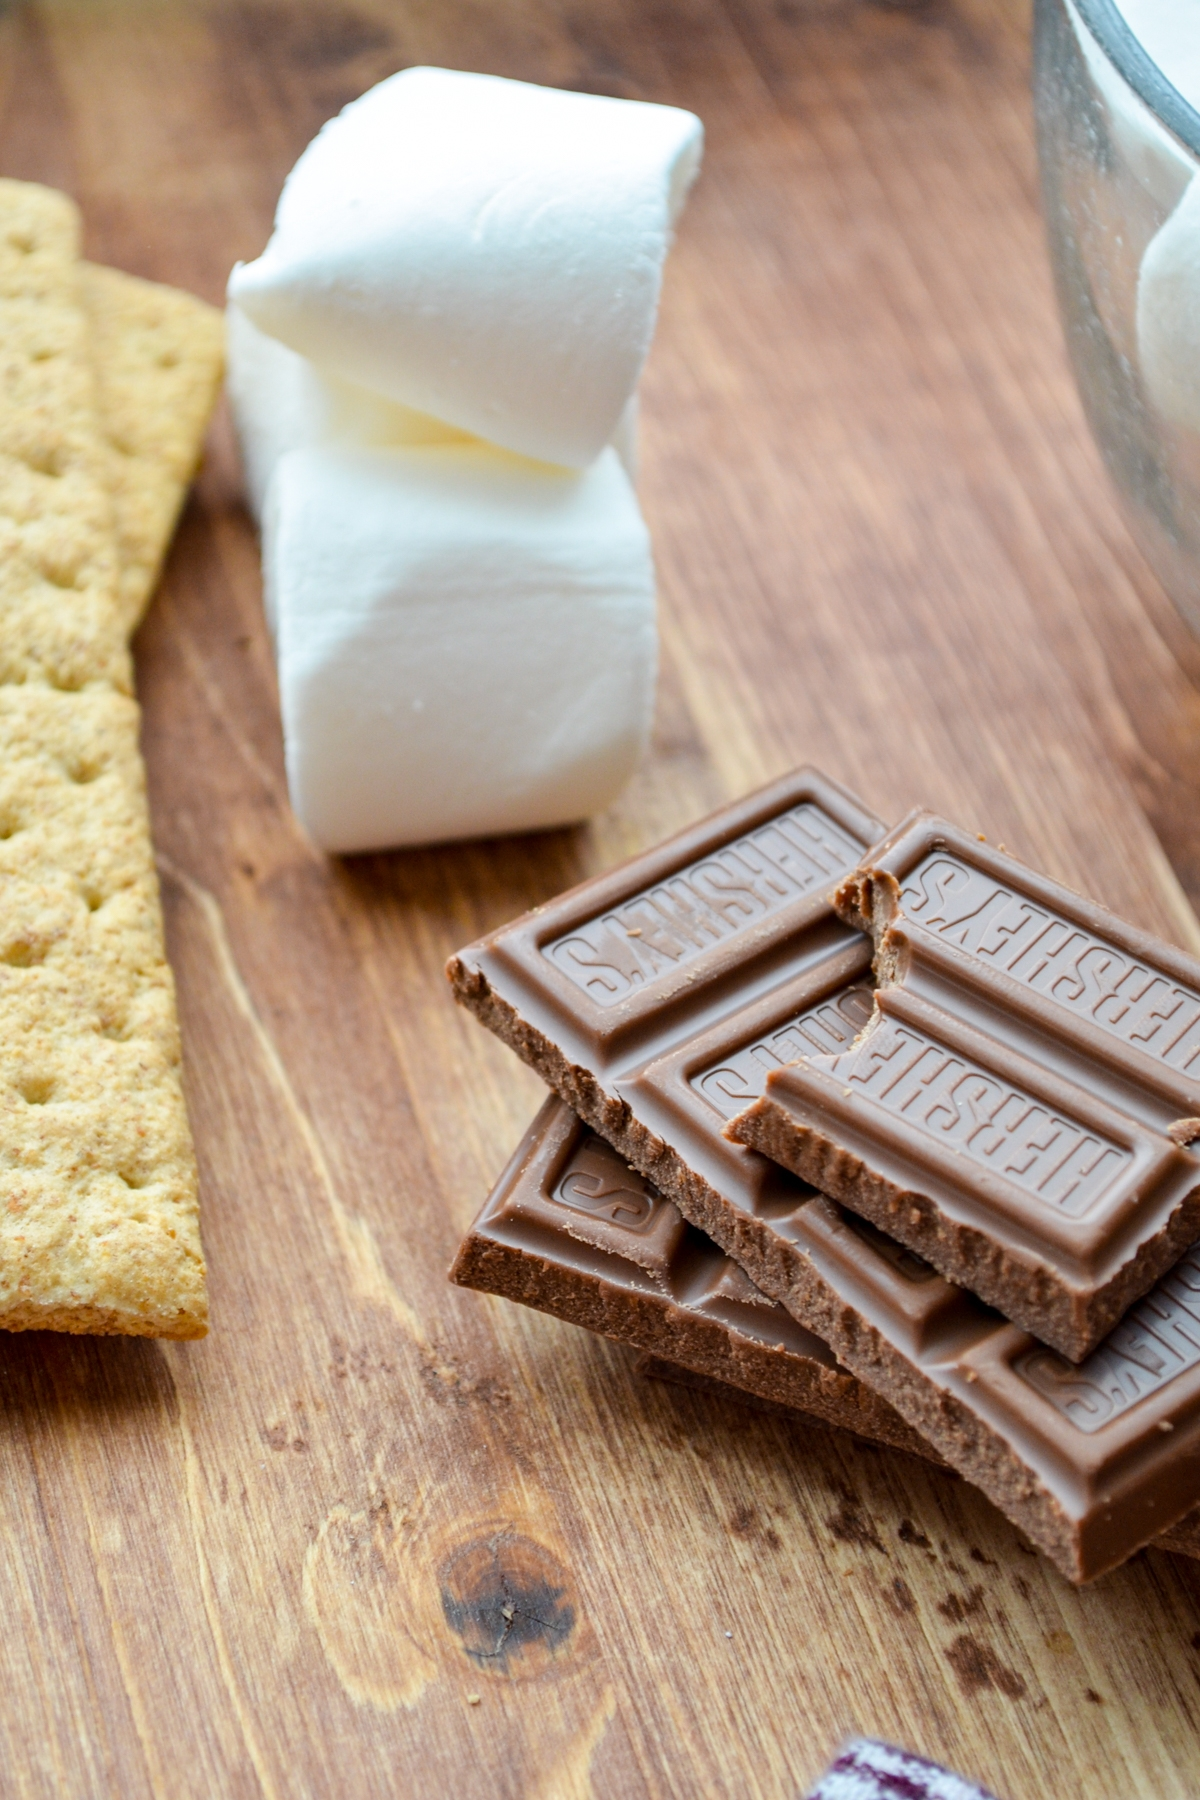 A few bars of chocolate, some marshmallows, and some graham crackers.